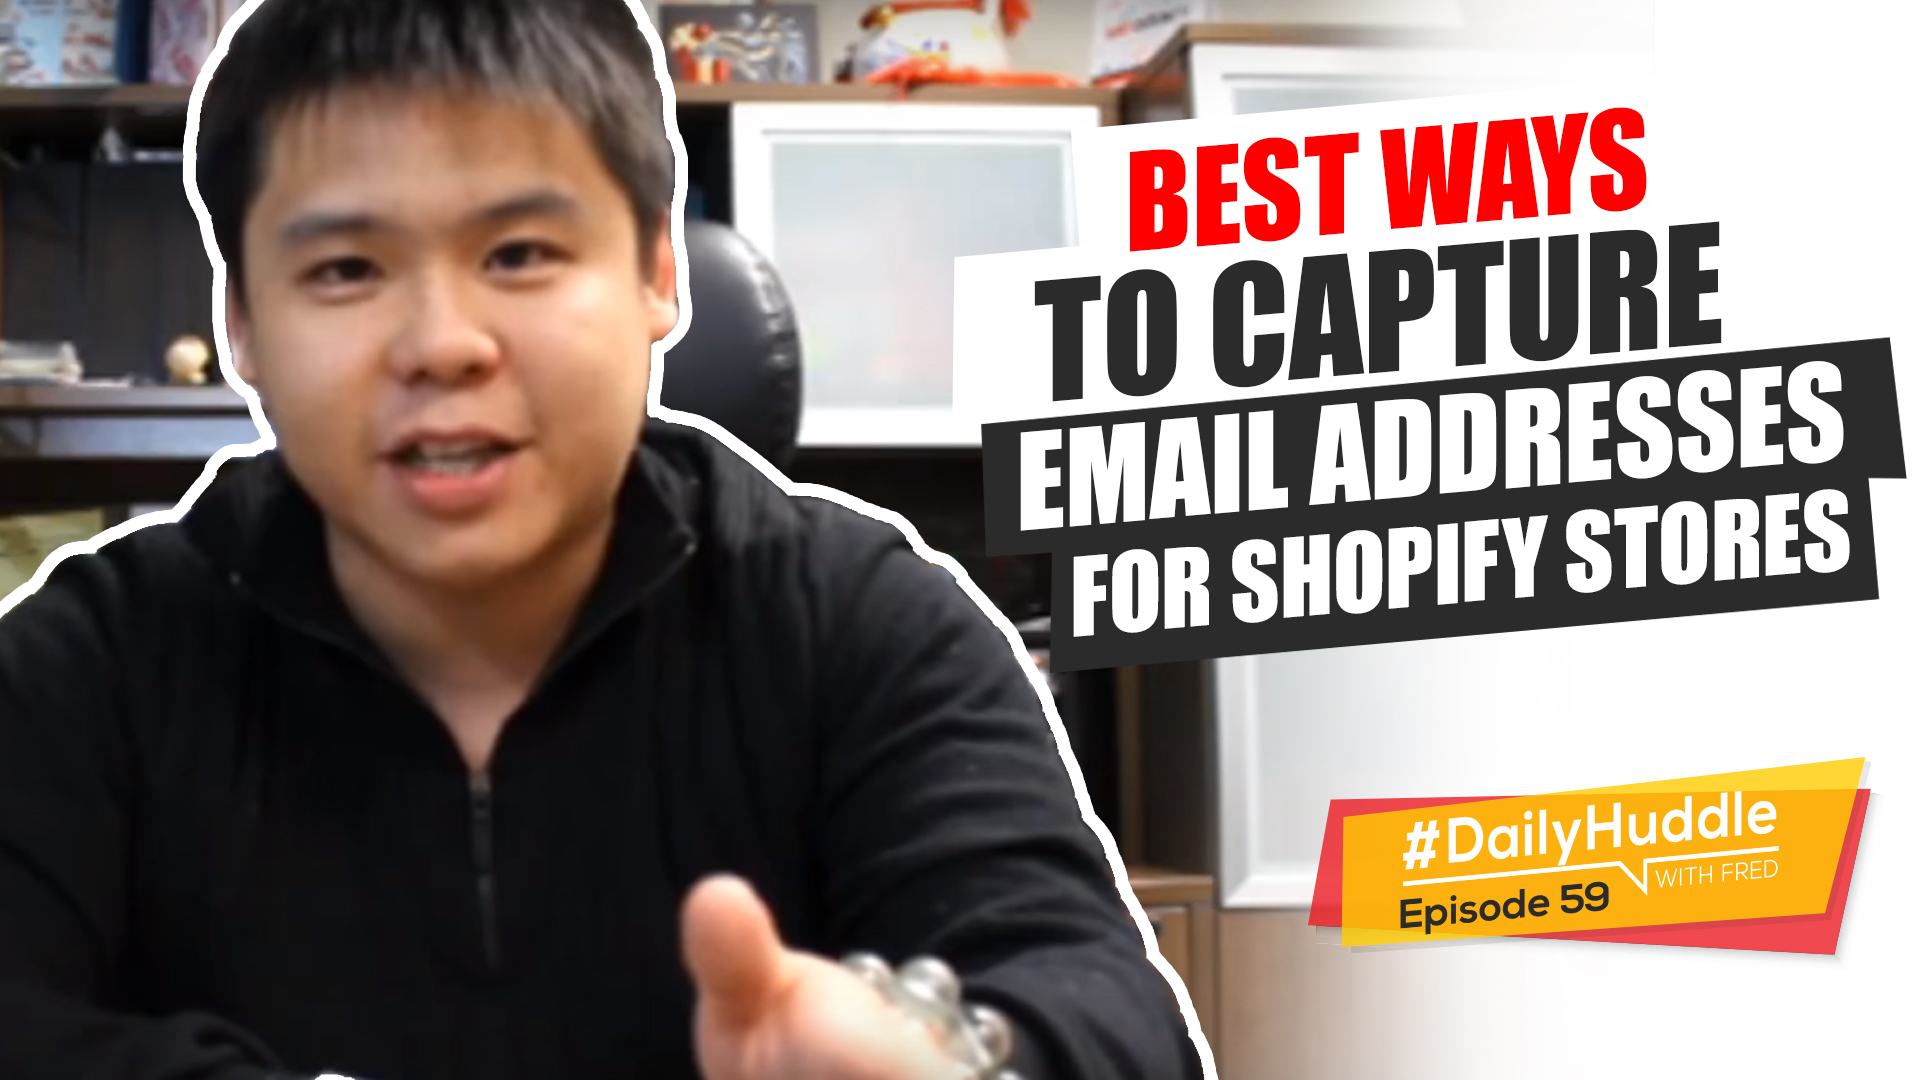 Daily Huddle - Ep 59 | Best Ways To Capture Email Addresses For Shopify Stores